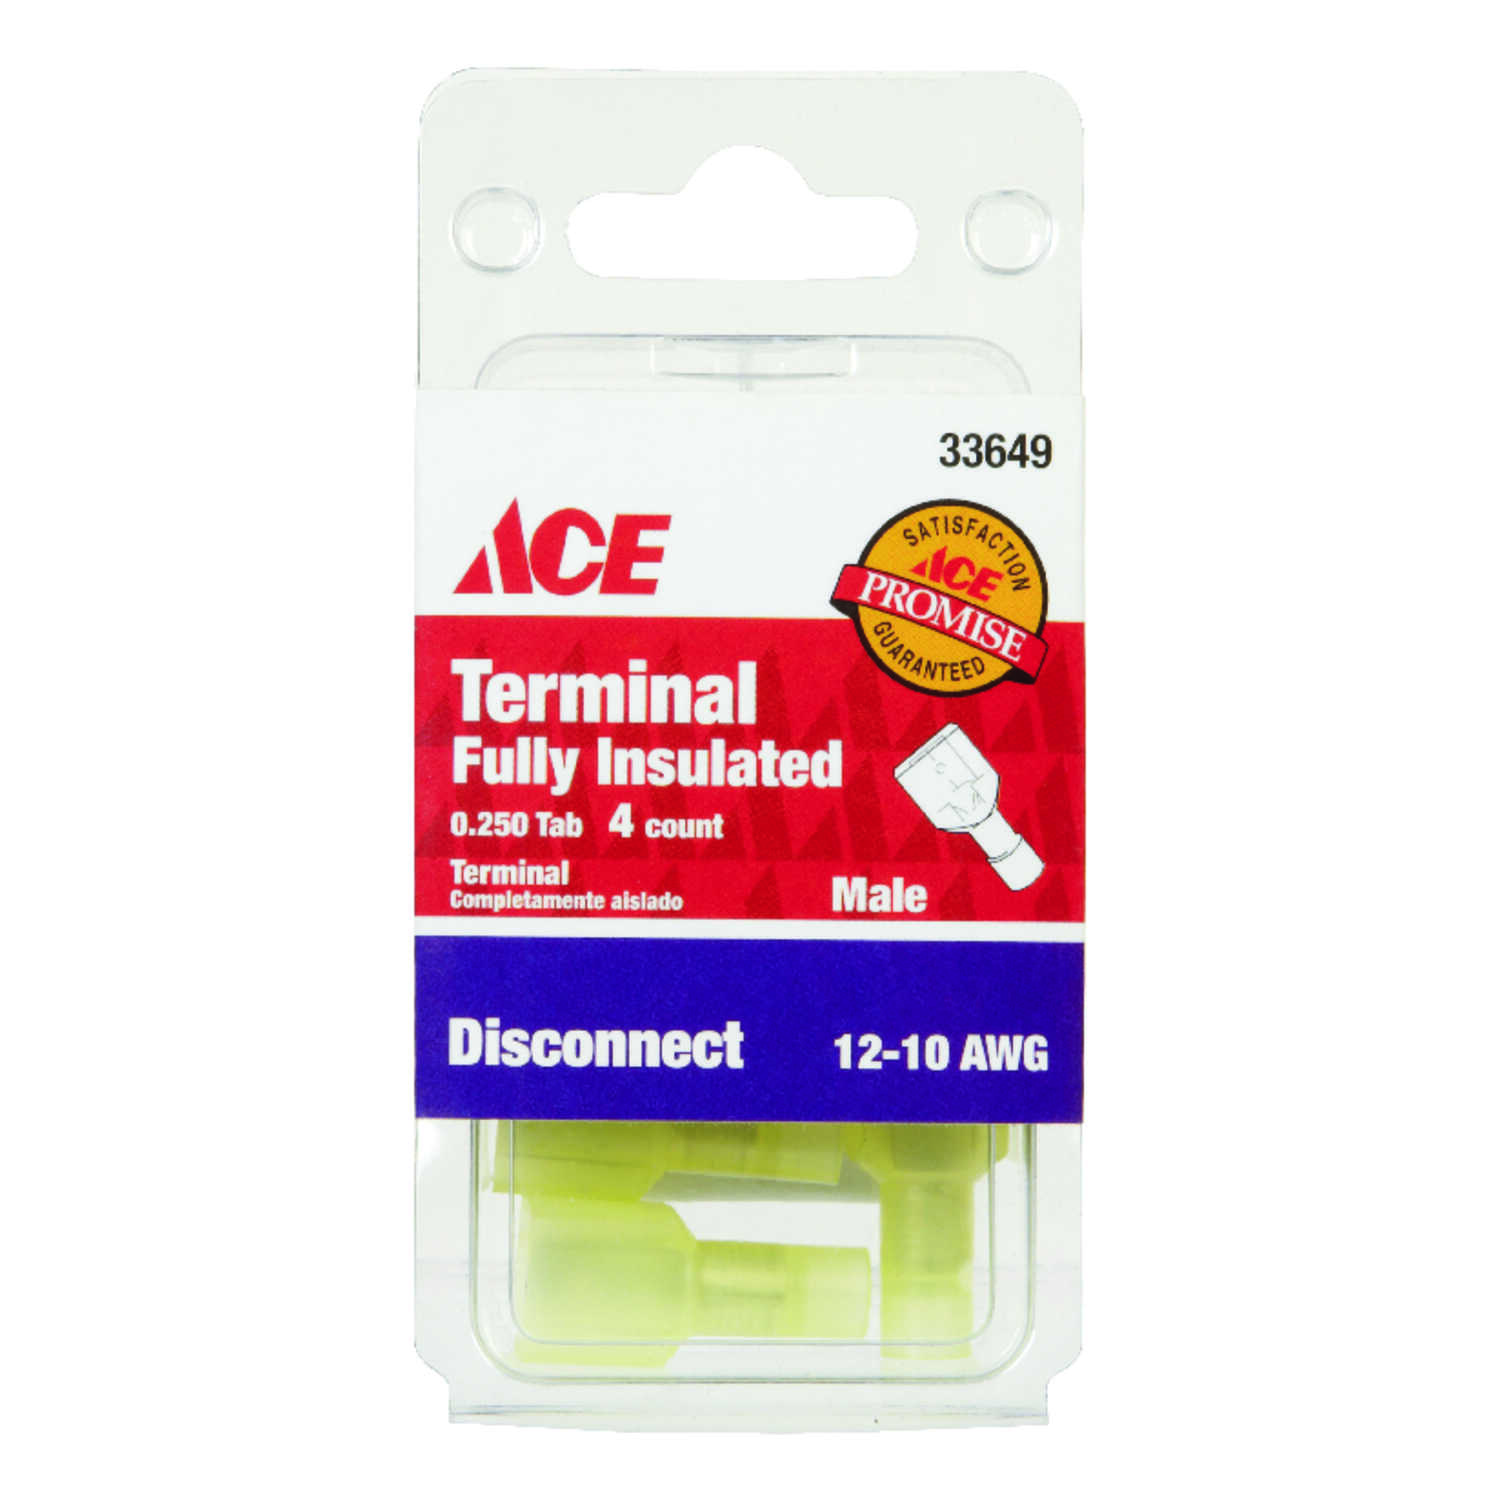 Ace  Male Disconnect  12-10 AWG 4  Insulated Wire